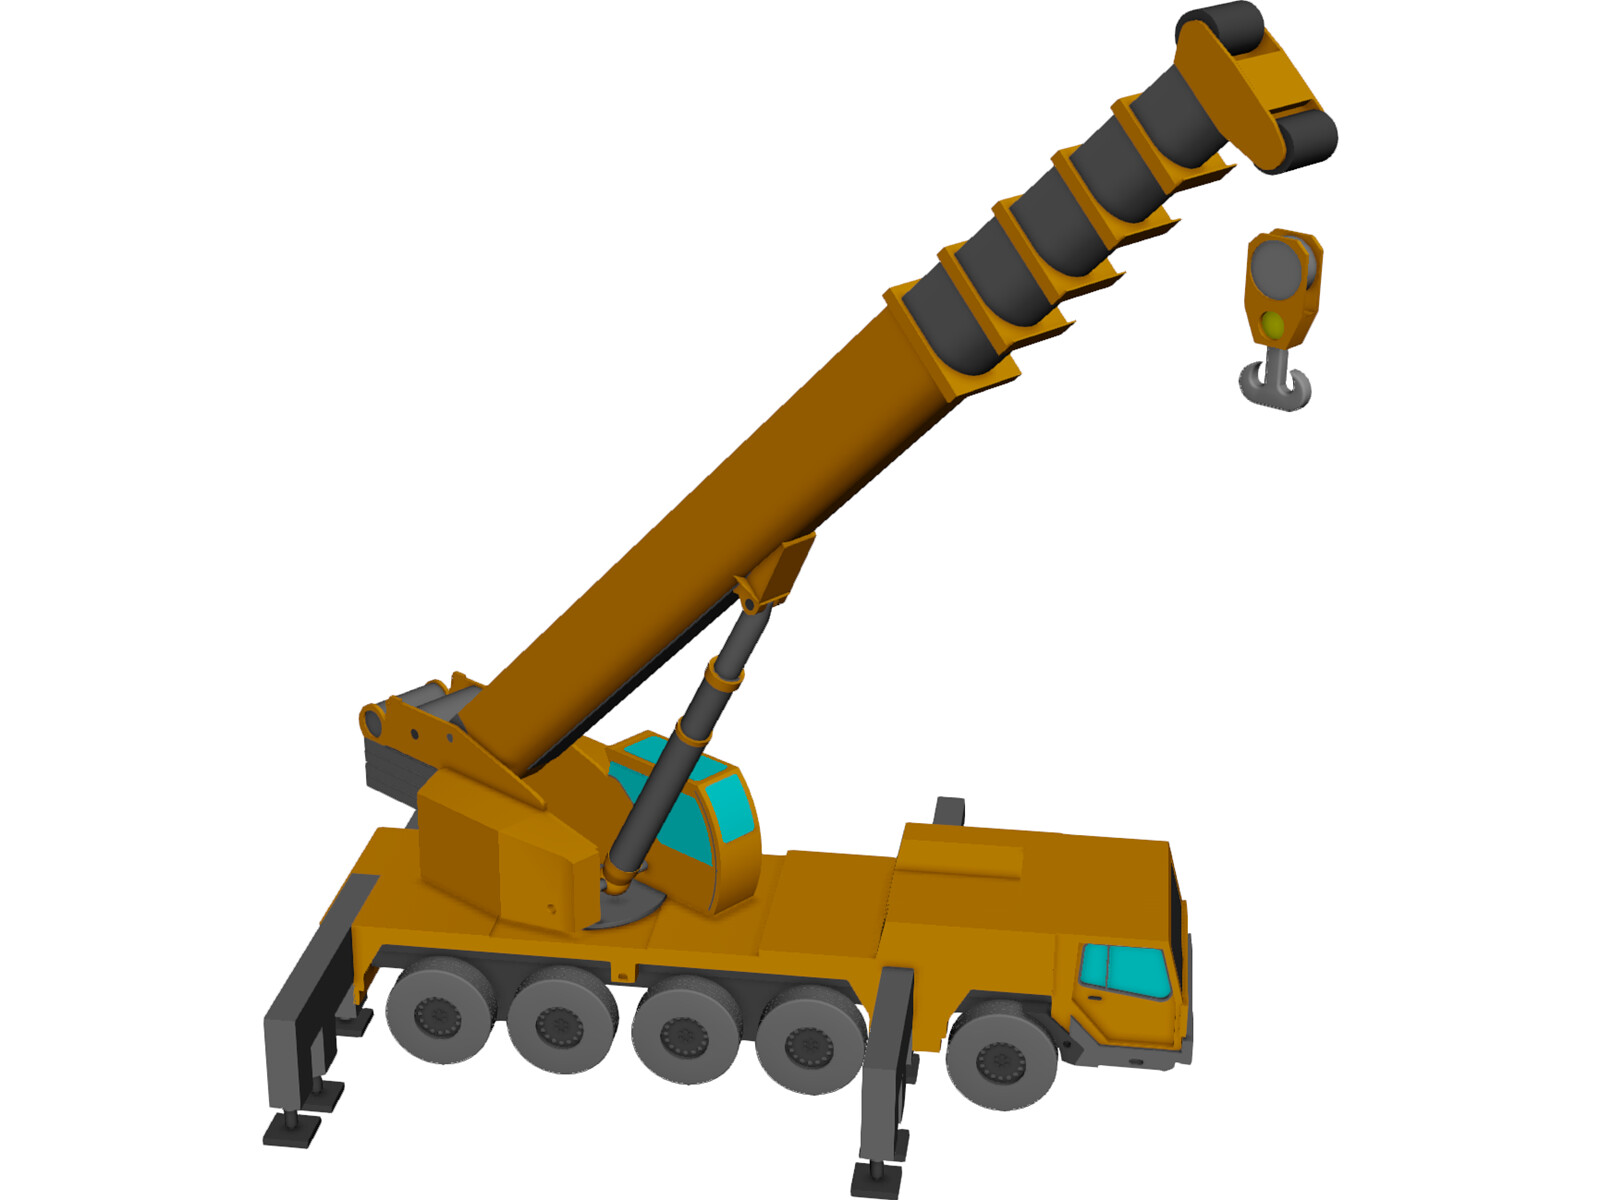 All Terrain Crane 3D CAD Model